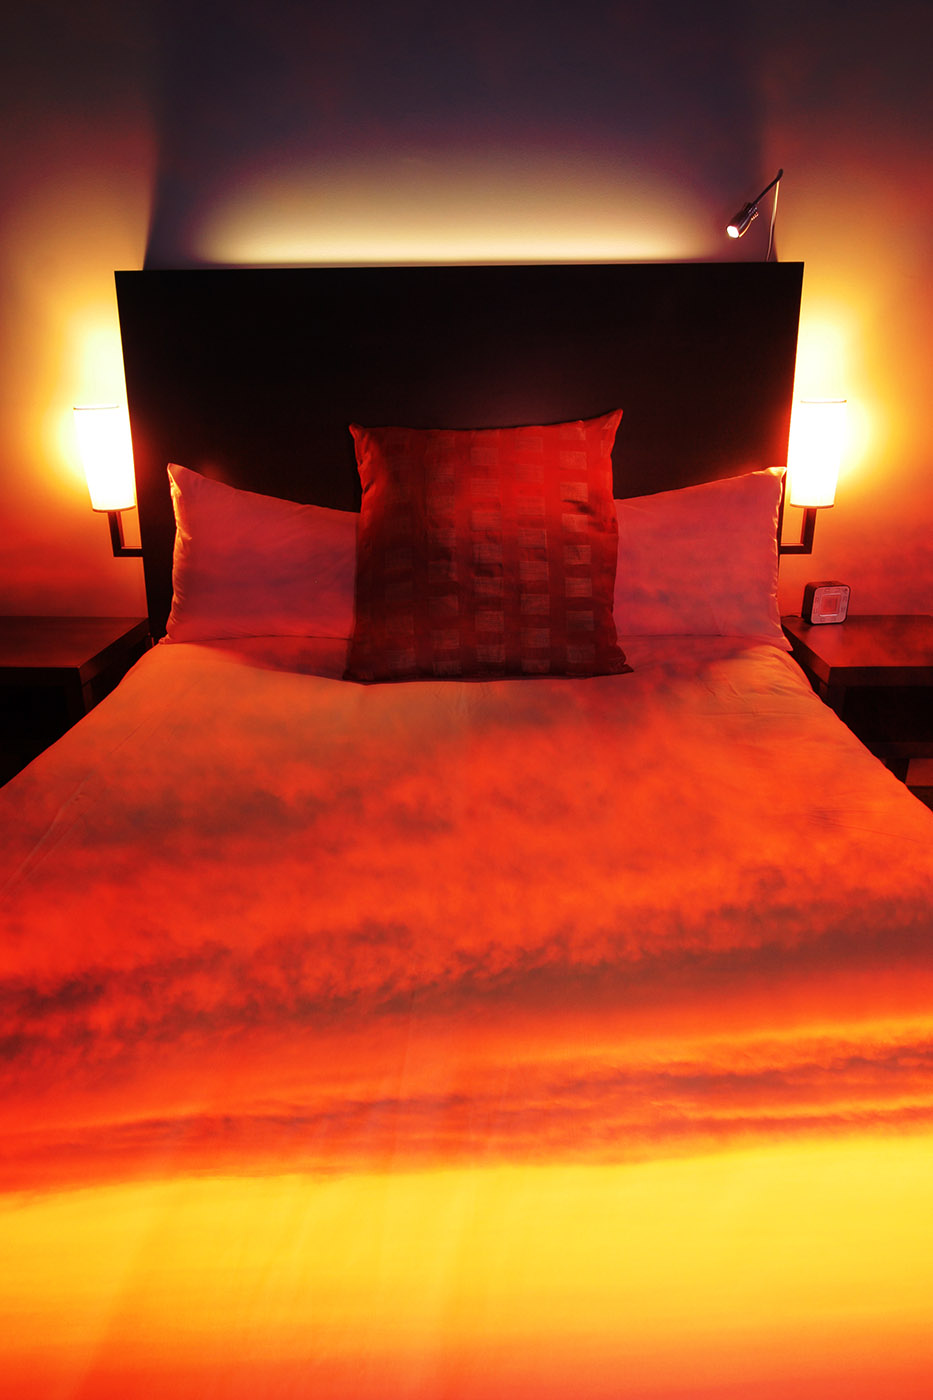 Sunset Bed Cover 2 - stock photos and royalty-free images